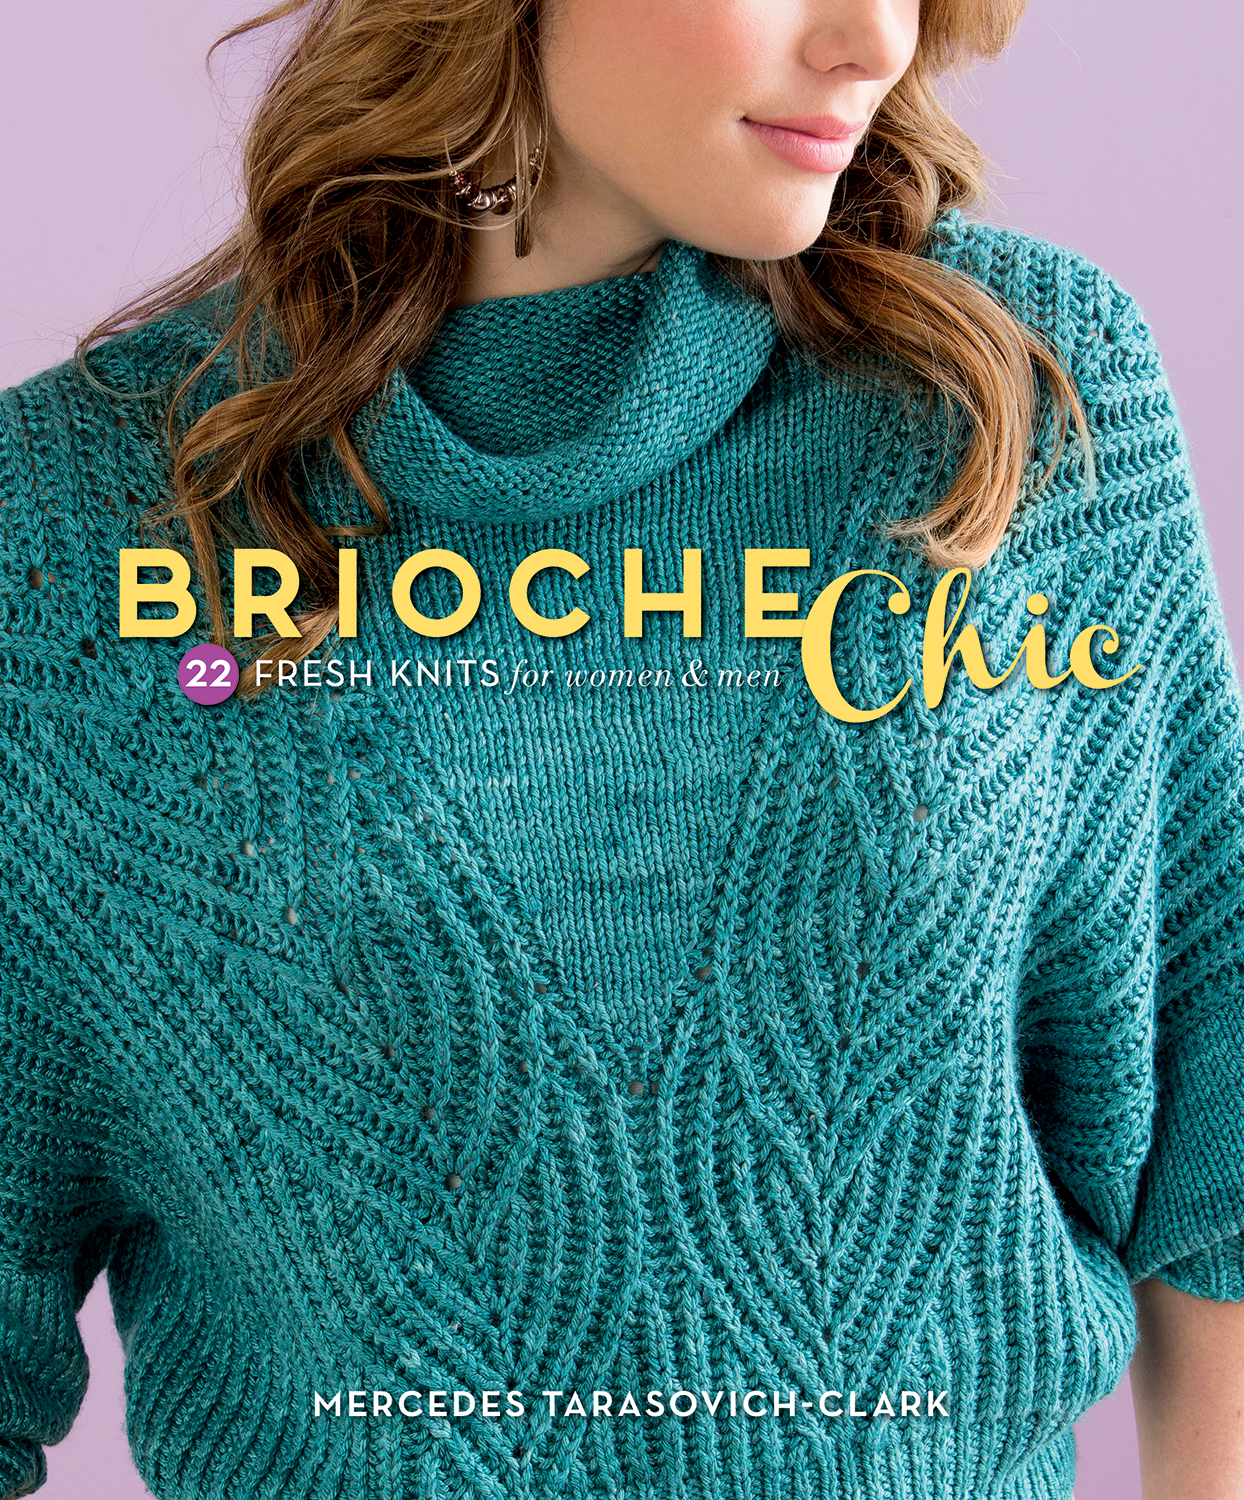 Brioche Knitting Mercedes Knits